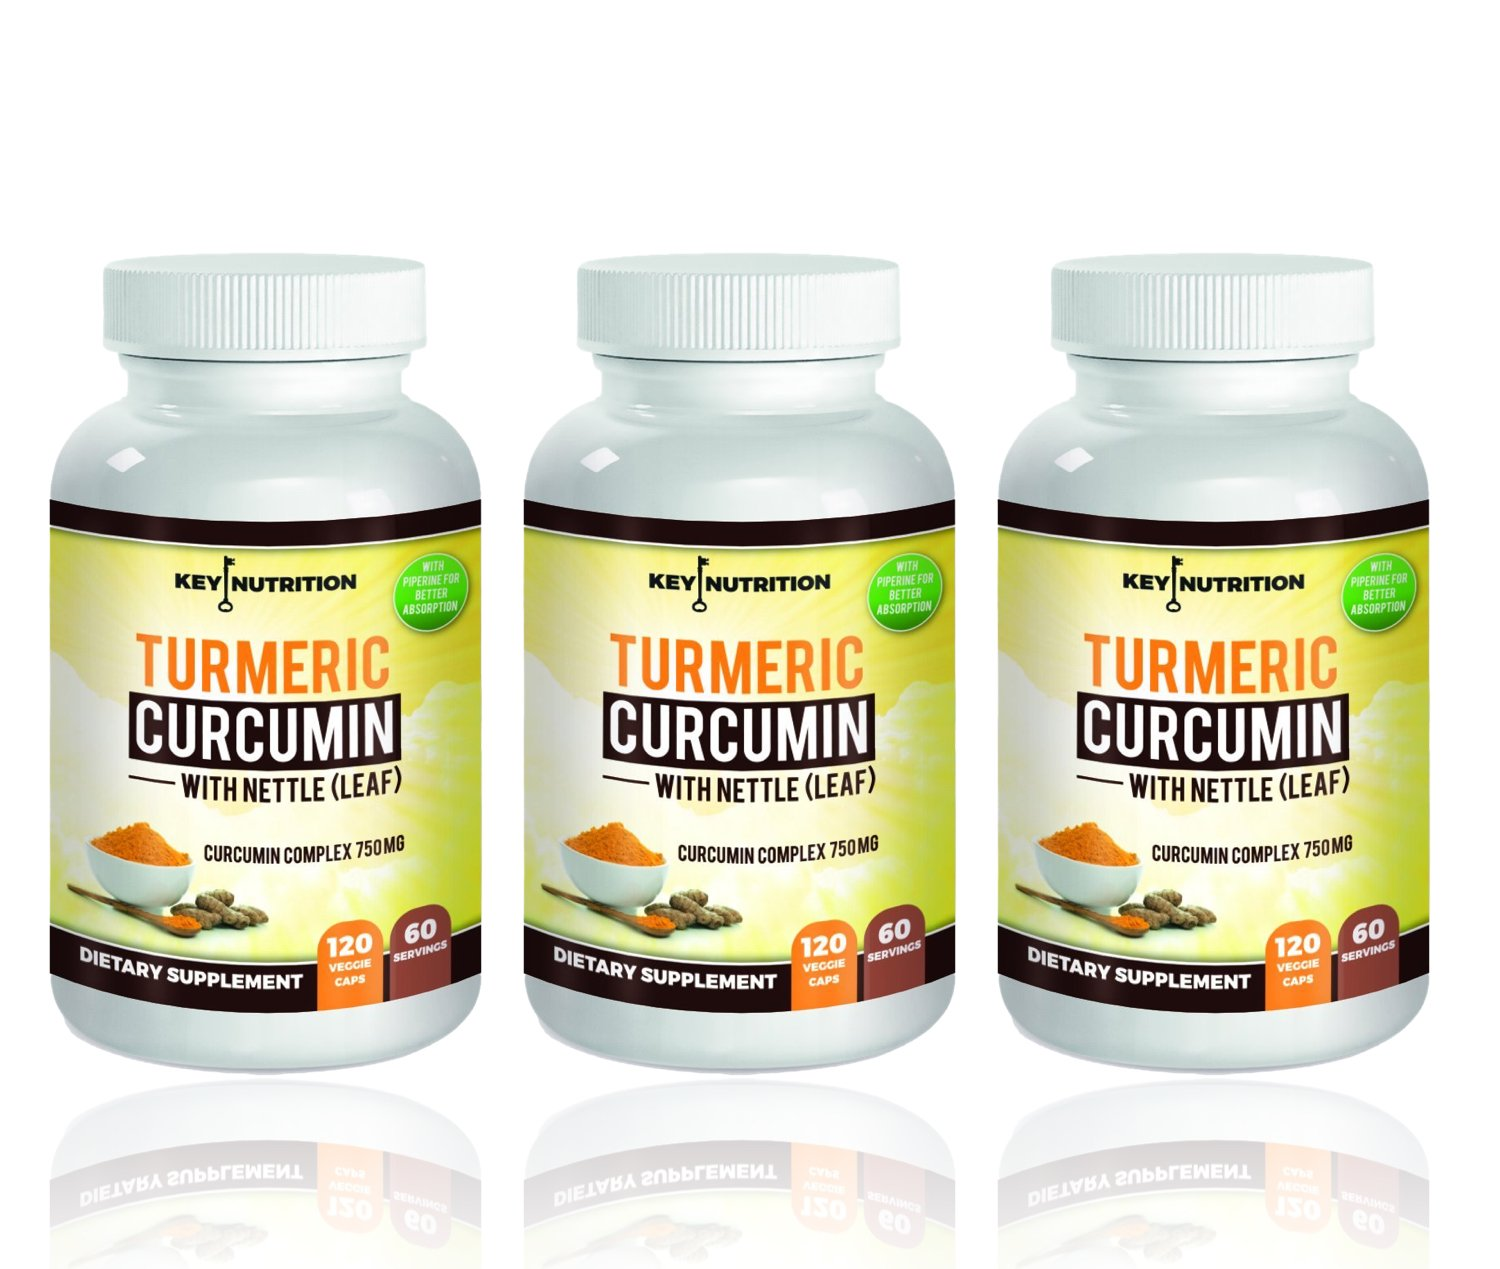 Turmeric Curcumin 1500mg 120 Veggie Capsules- with Piperine (Black Pepper) Extract (Pack of 3 Bottles)